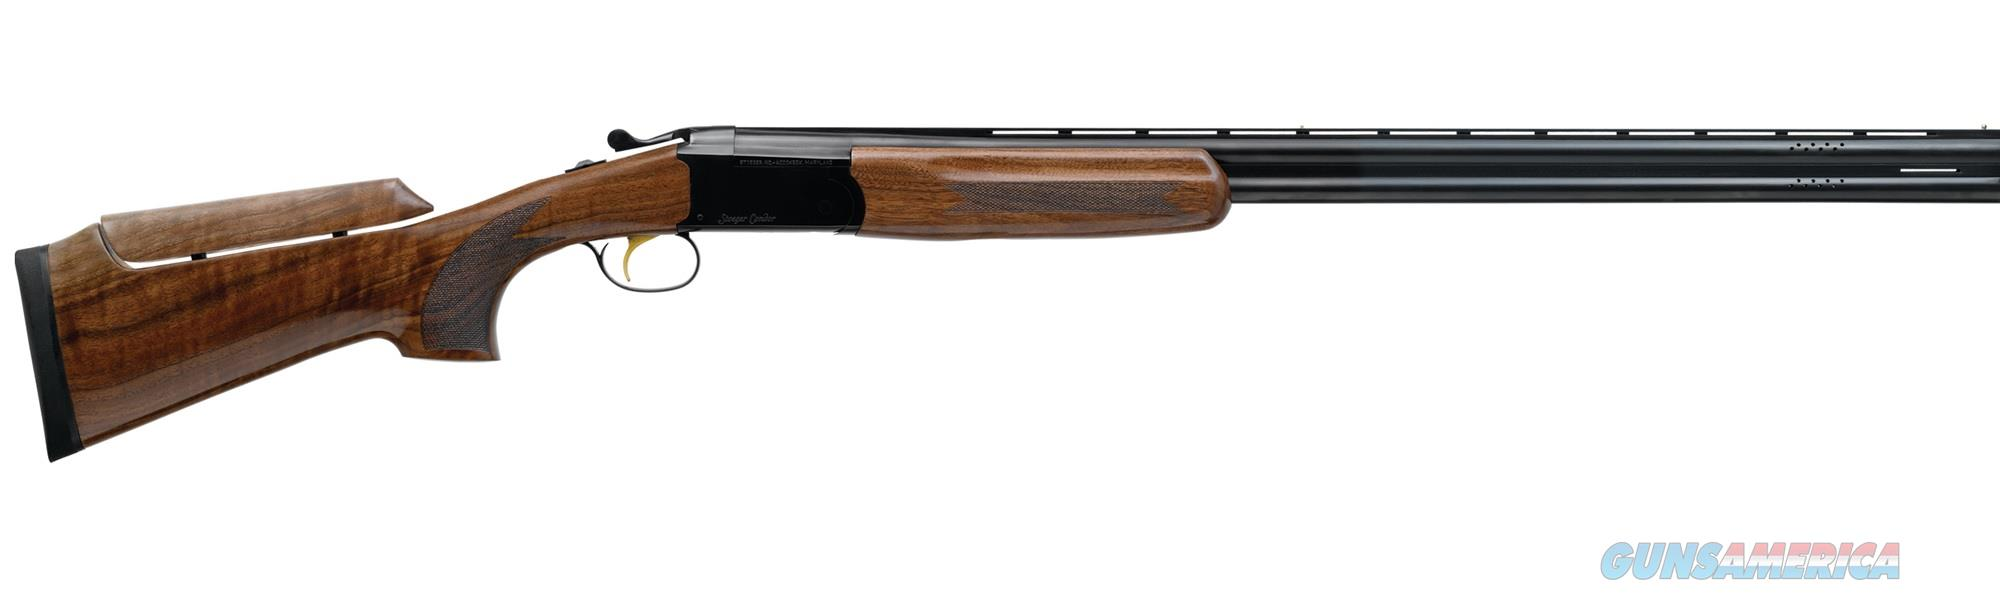 "Stoeger Condor Competition O/U Left-Hand 12 Gauge 30"" 31047   Guns > Shotguns > Stoeger Shotguns"